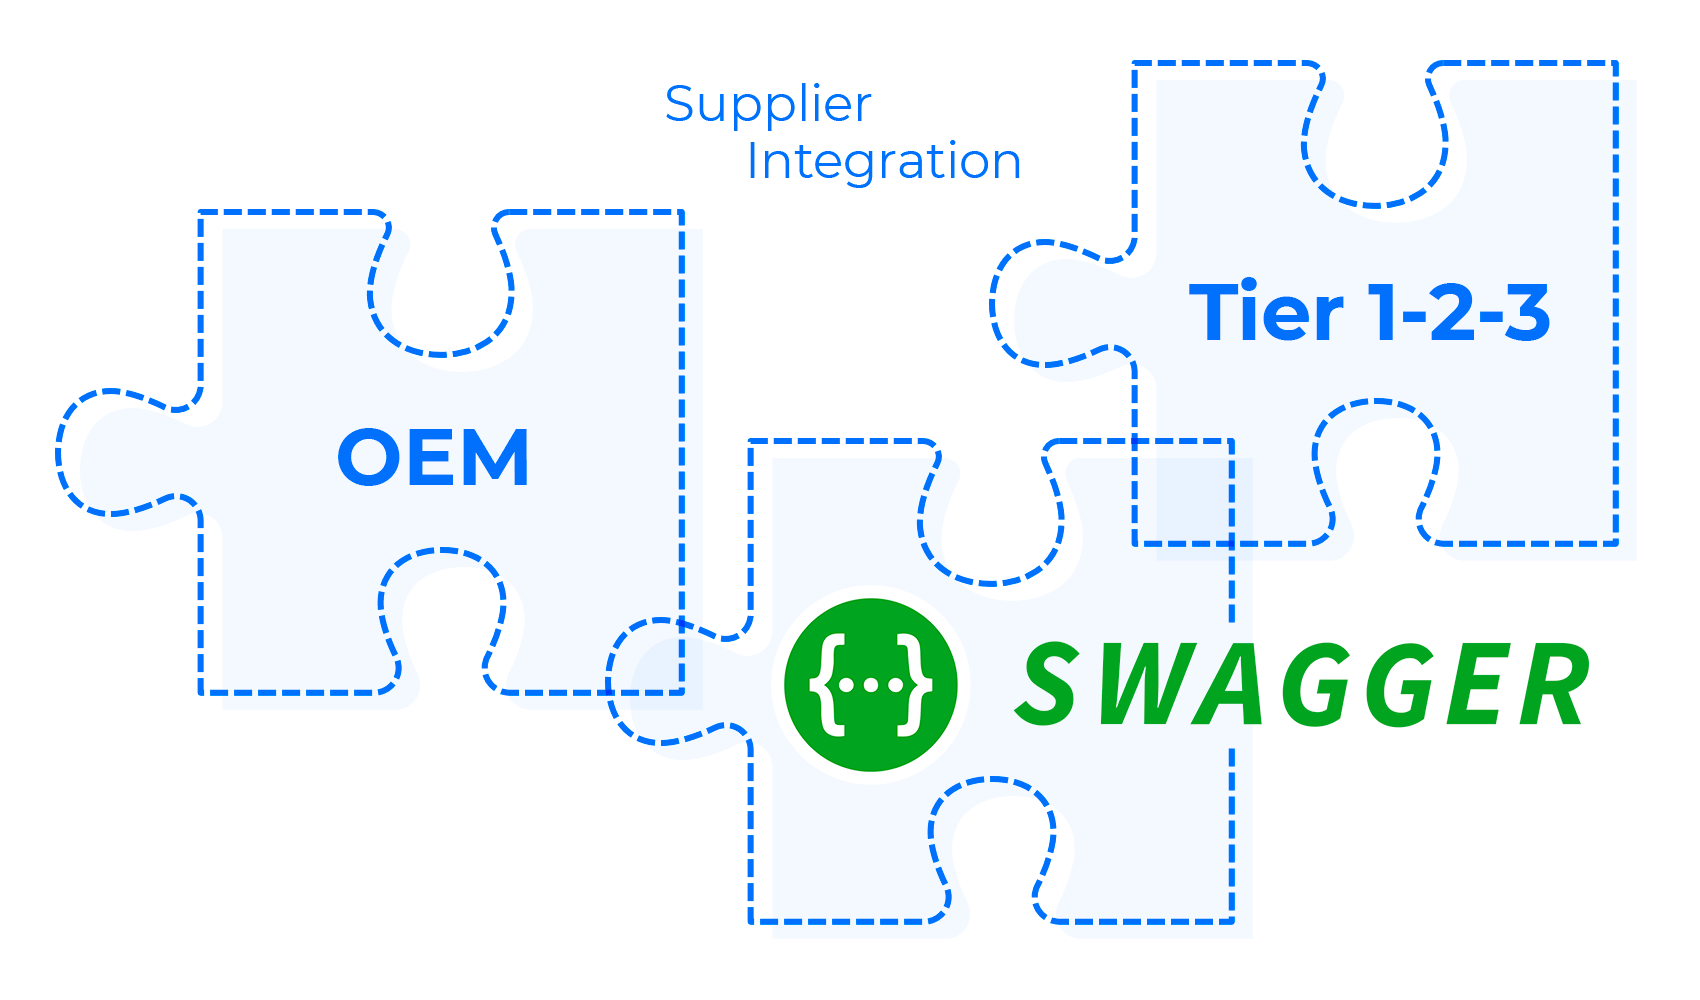 swagger What is new in codeBeamer ALM 10.0?